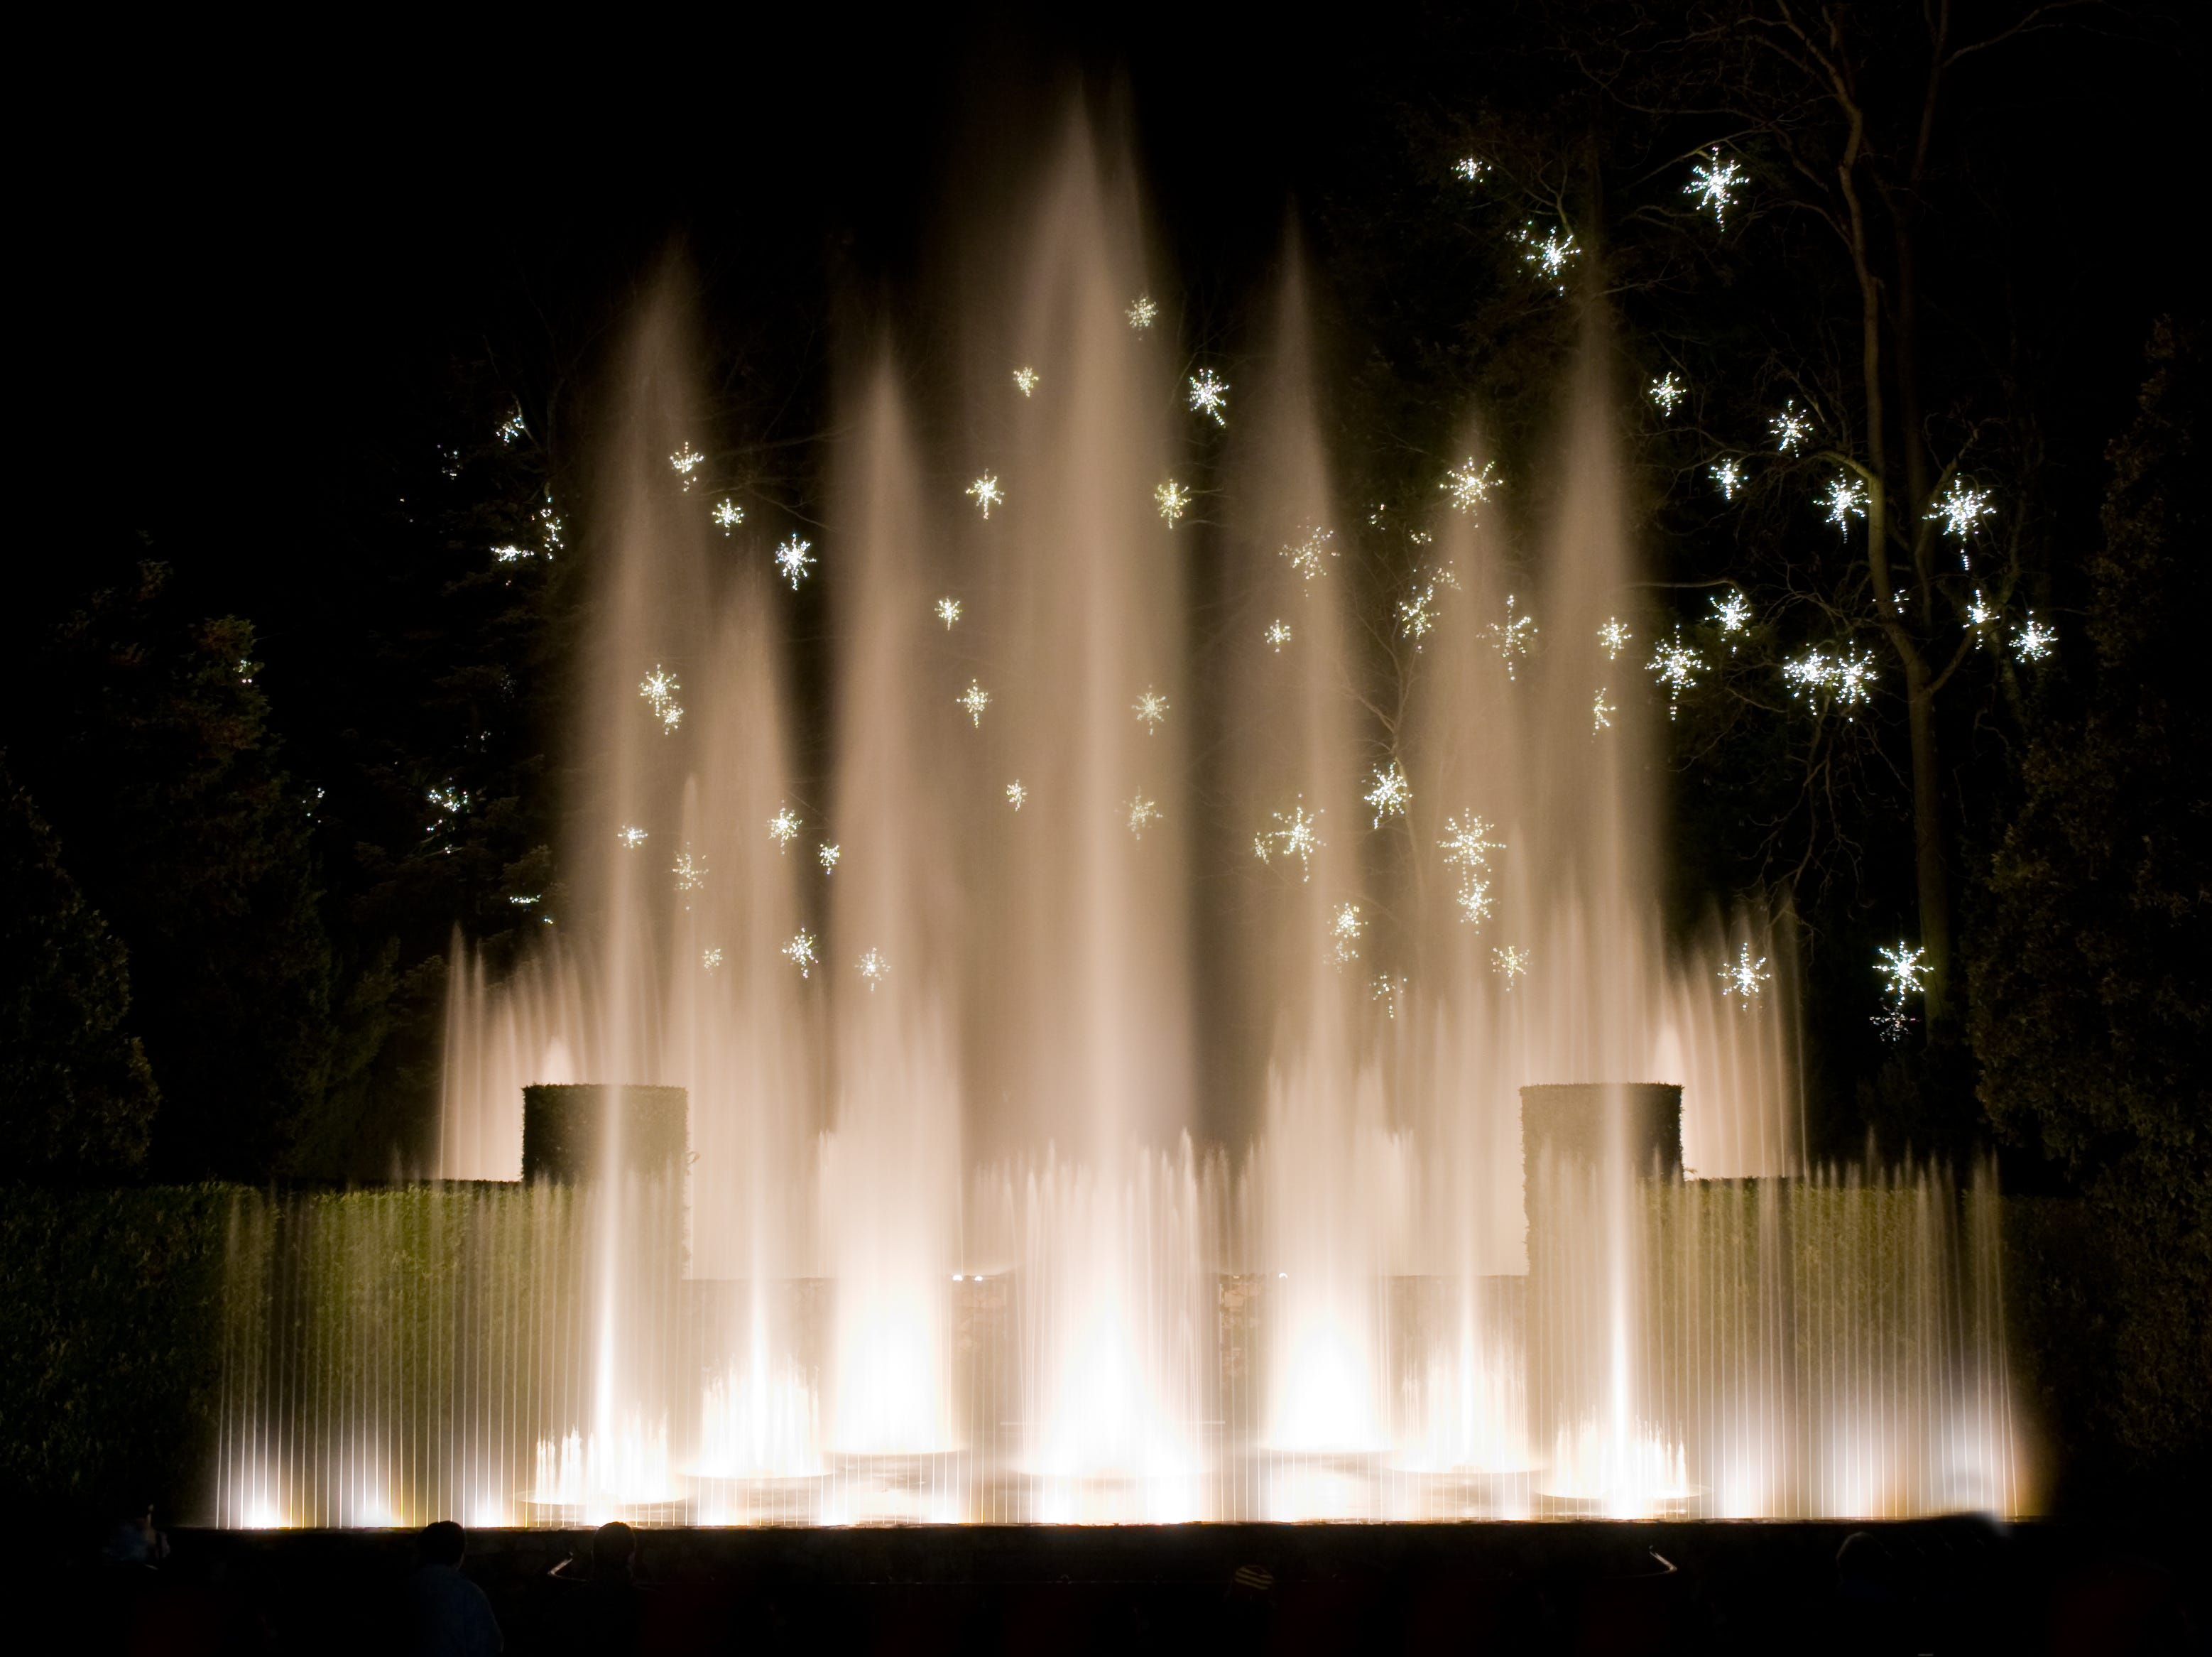 The Open Air Theatre fountains run lighted shows every few minutes during A Longwood Christmas. but the main fountains close for the winter.